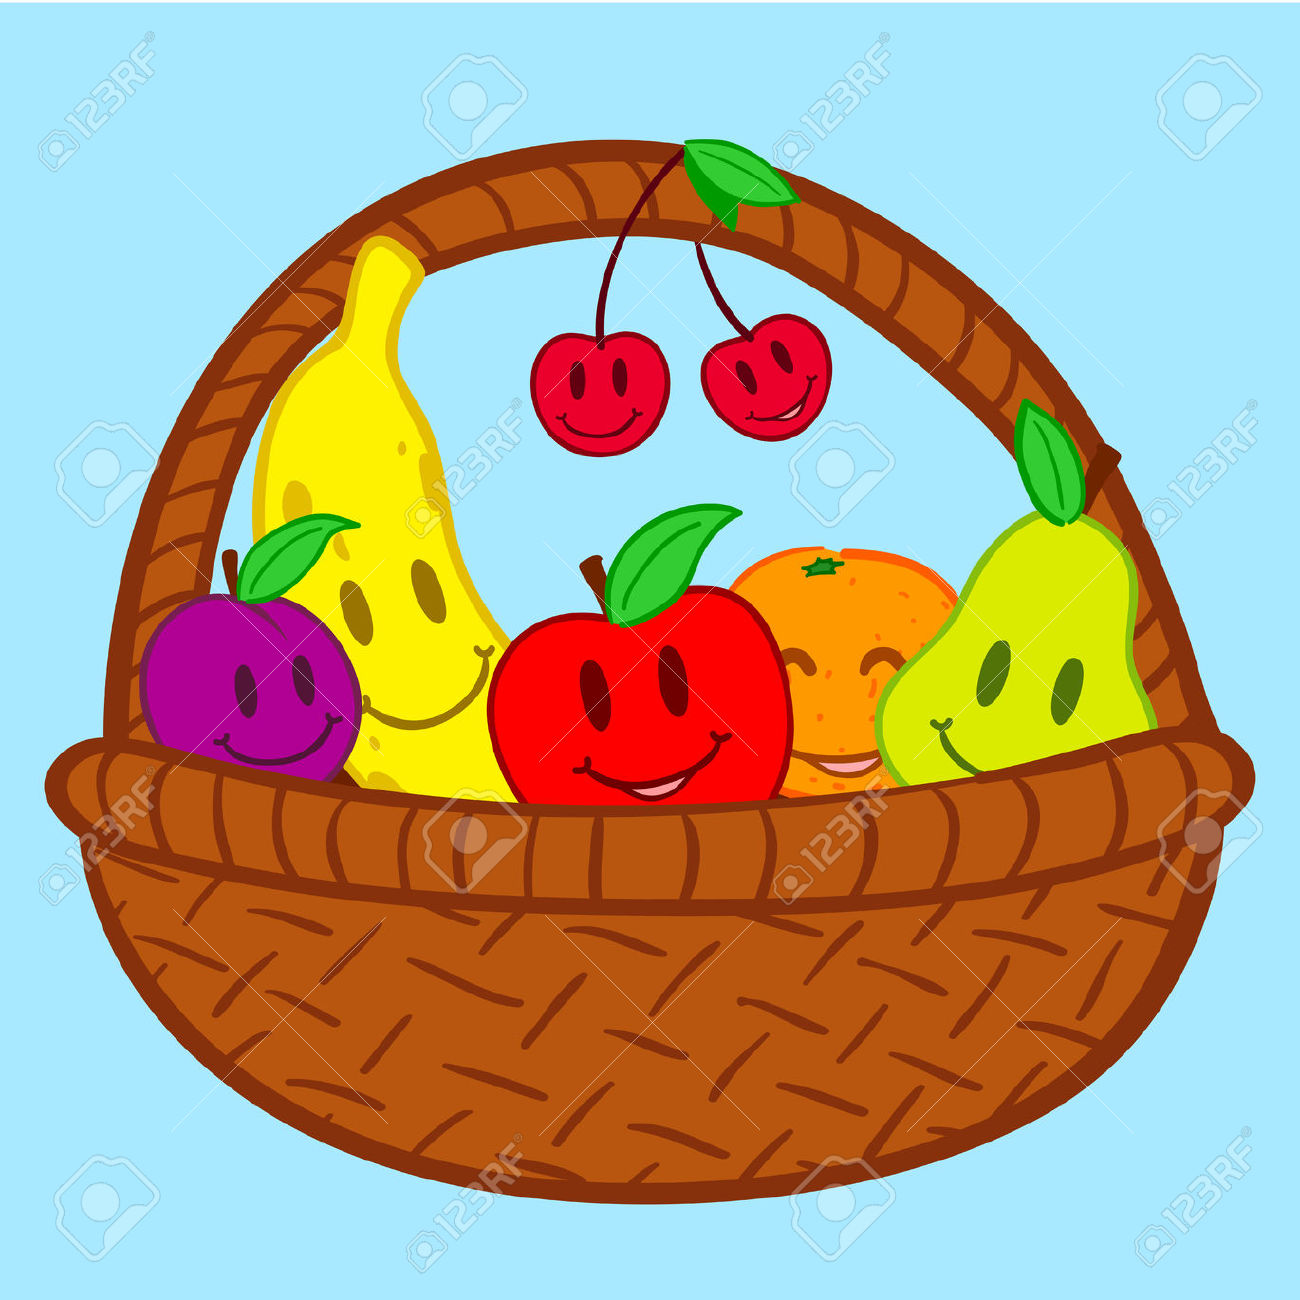 Fruitbasket clipart clip royalty free stock Fruits basket clipart 5 » Clipart Station clip royalty free stock